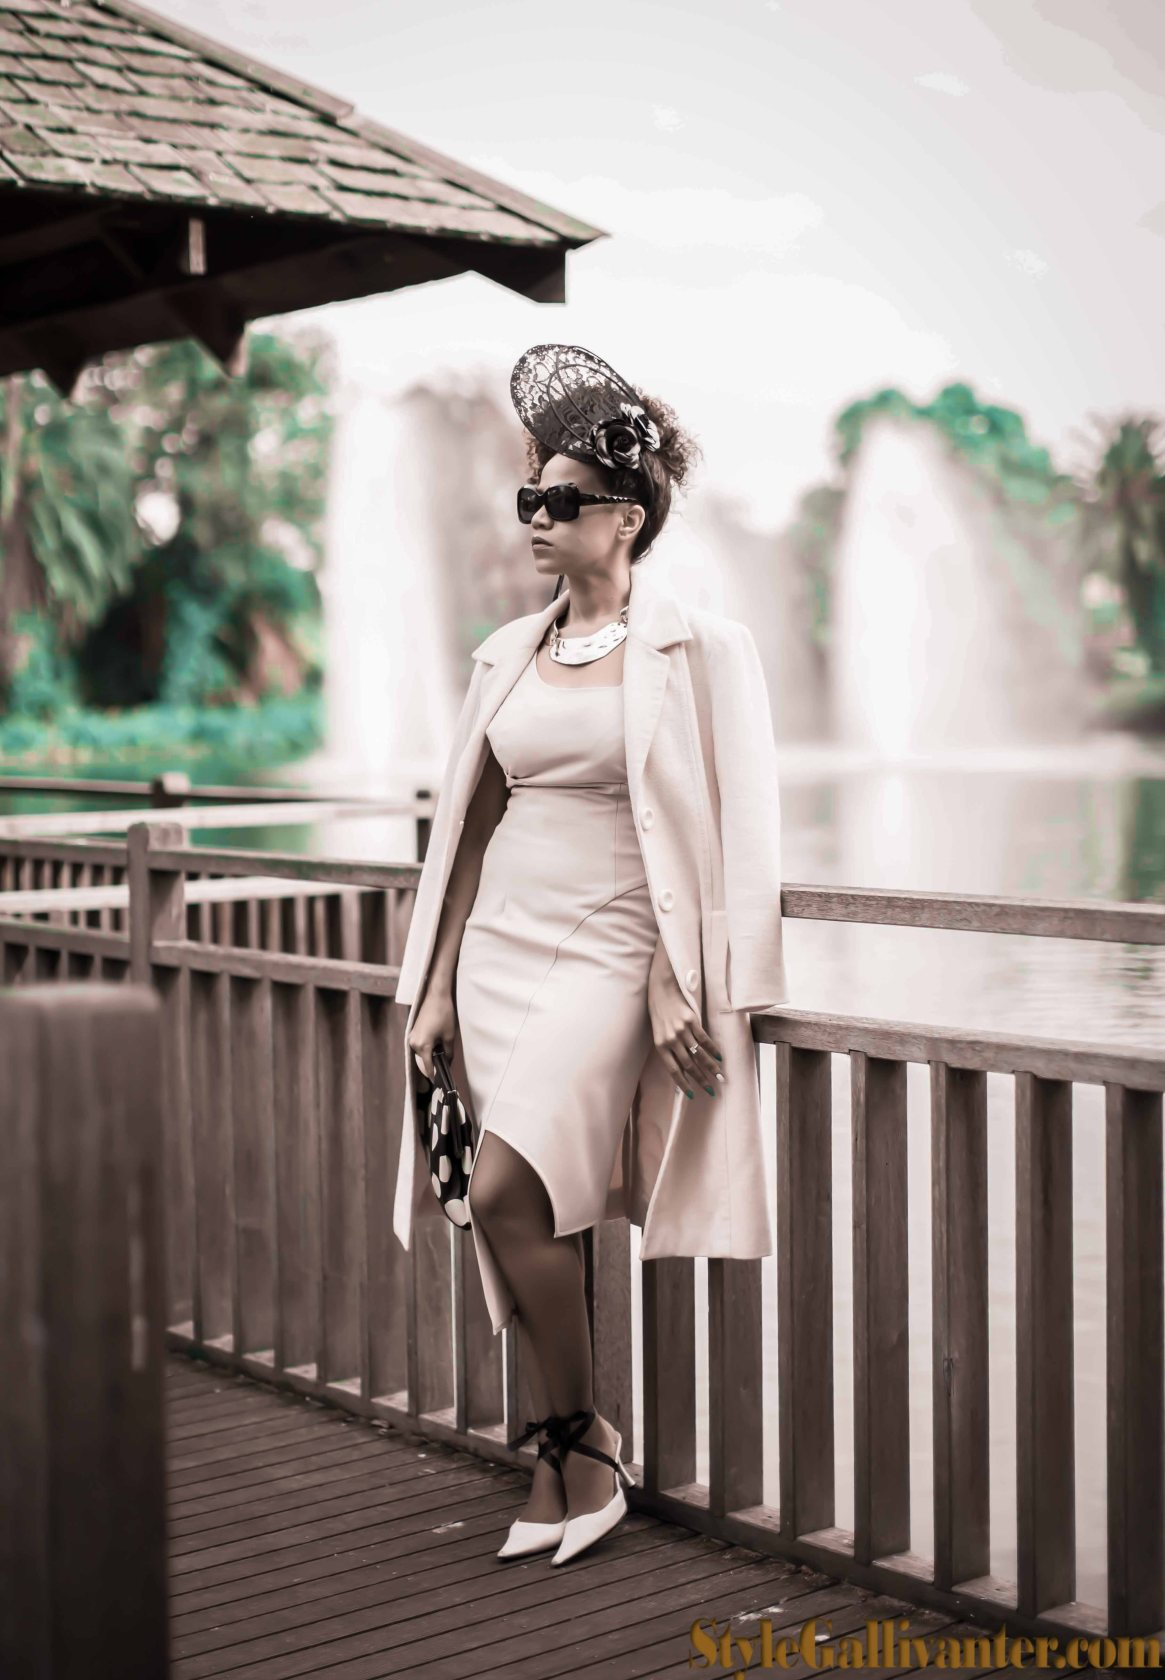 melbourne-cup-2014_cream-dress_cream-coat_best-melbourne-fashion-blog_best-african-fashion-blog_best-afro-editorial_high-fashion-afro_easy-afro-hairstyles_emirates-melbourne-cup-fashion-2013